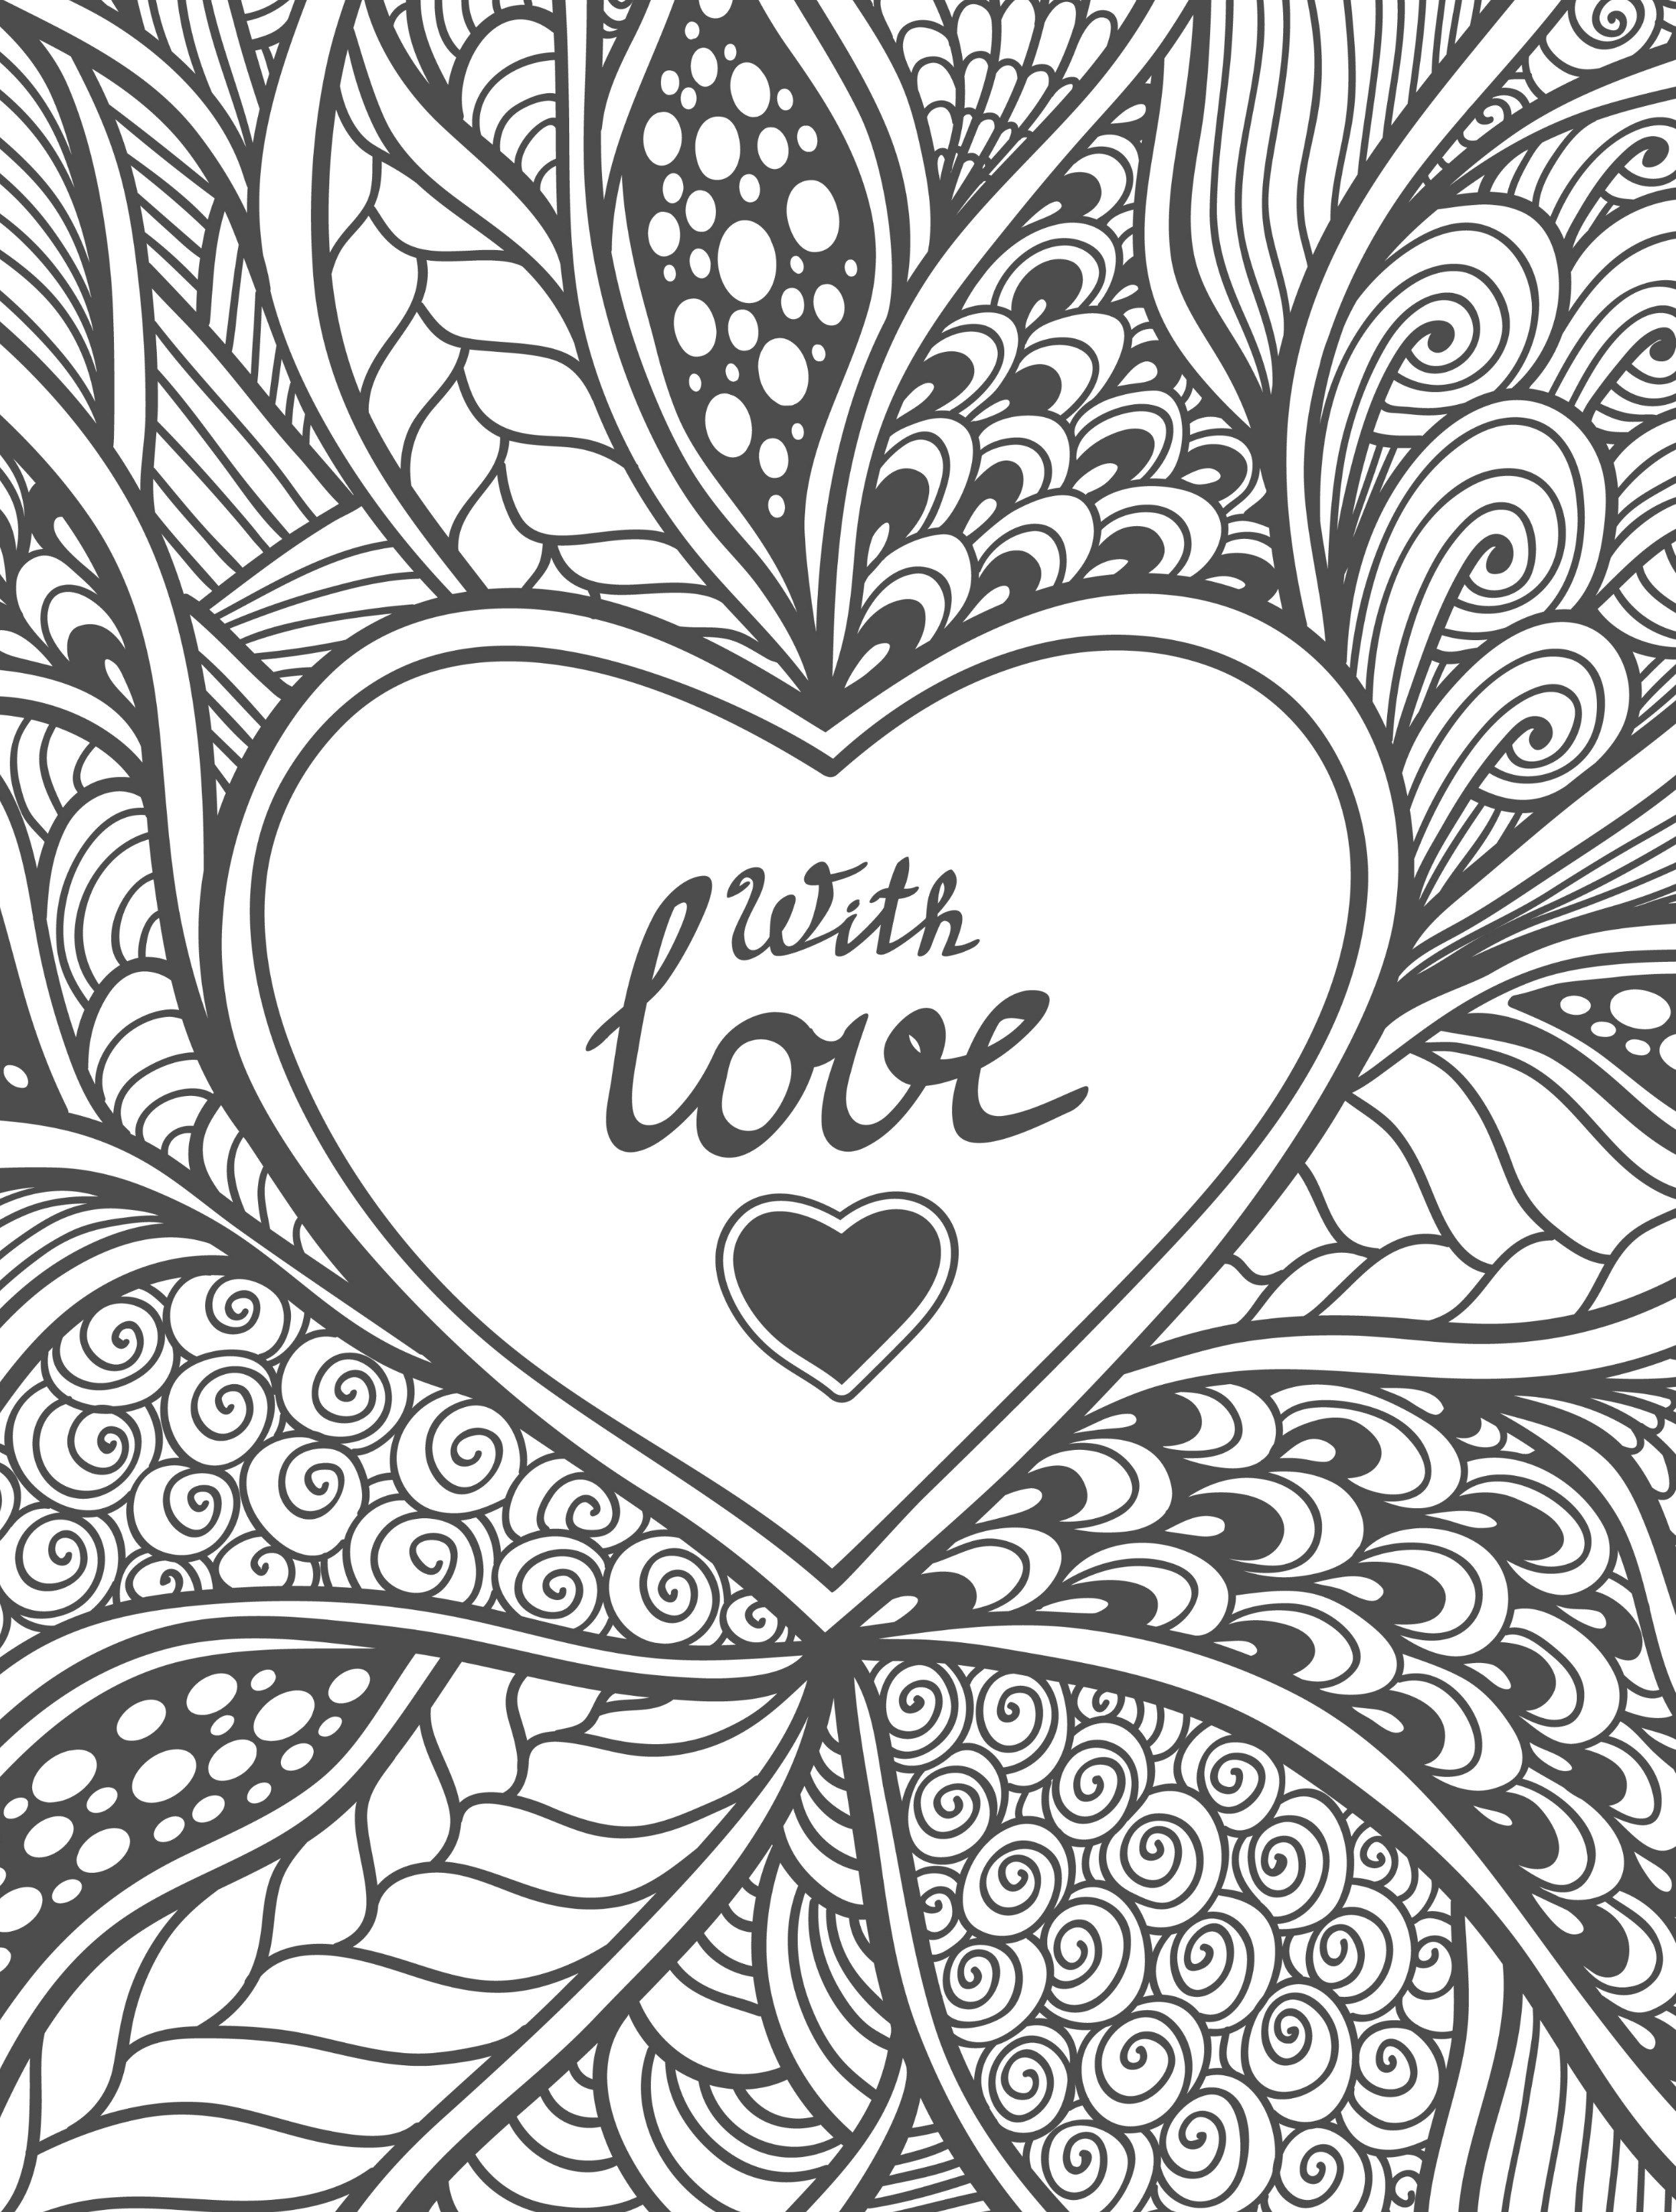 Printable coloring pages zentangle - 20 Free Printable Valentines Adult Coloring Pages